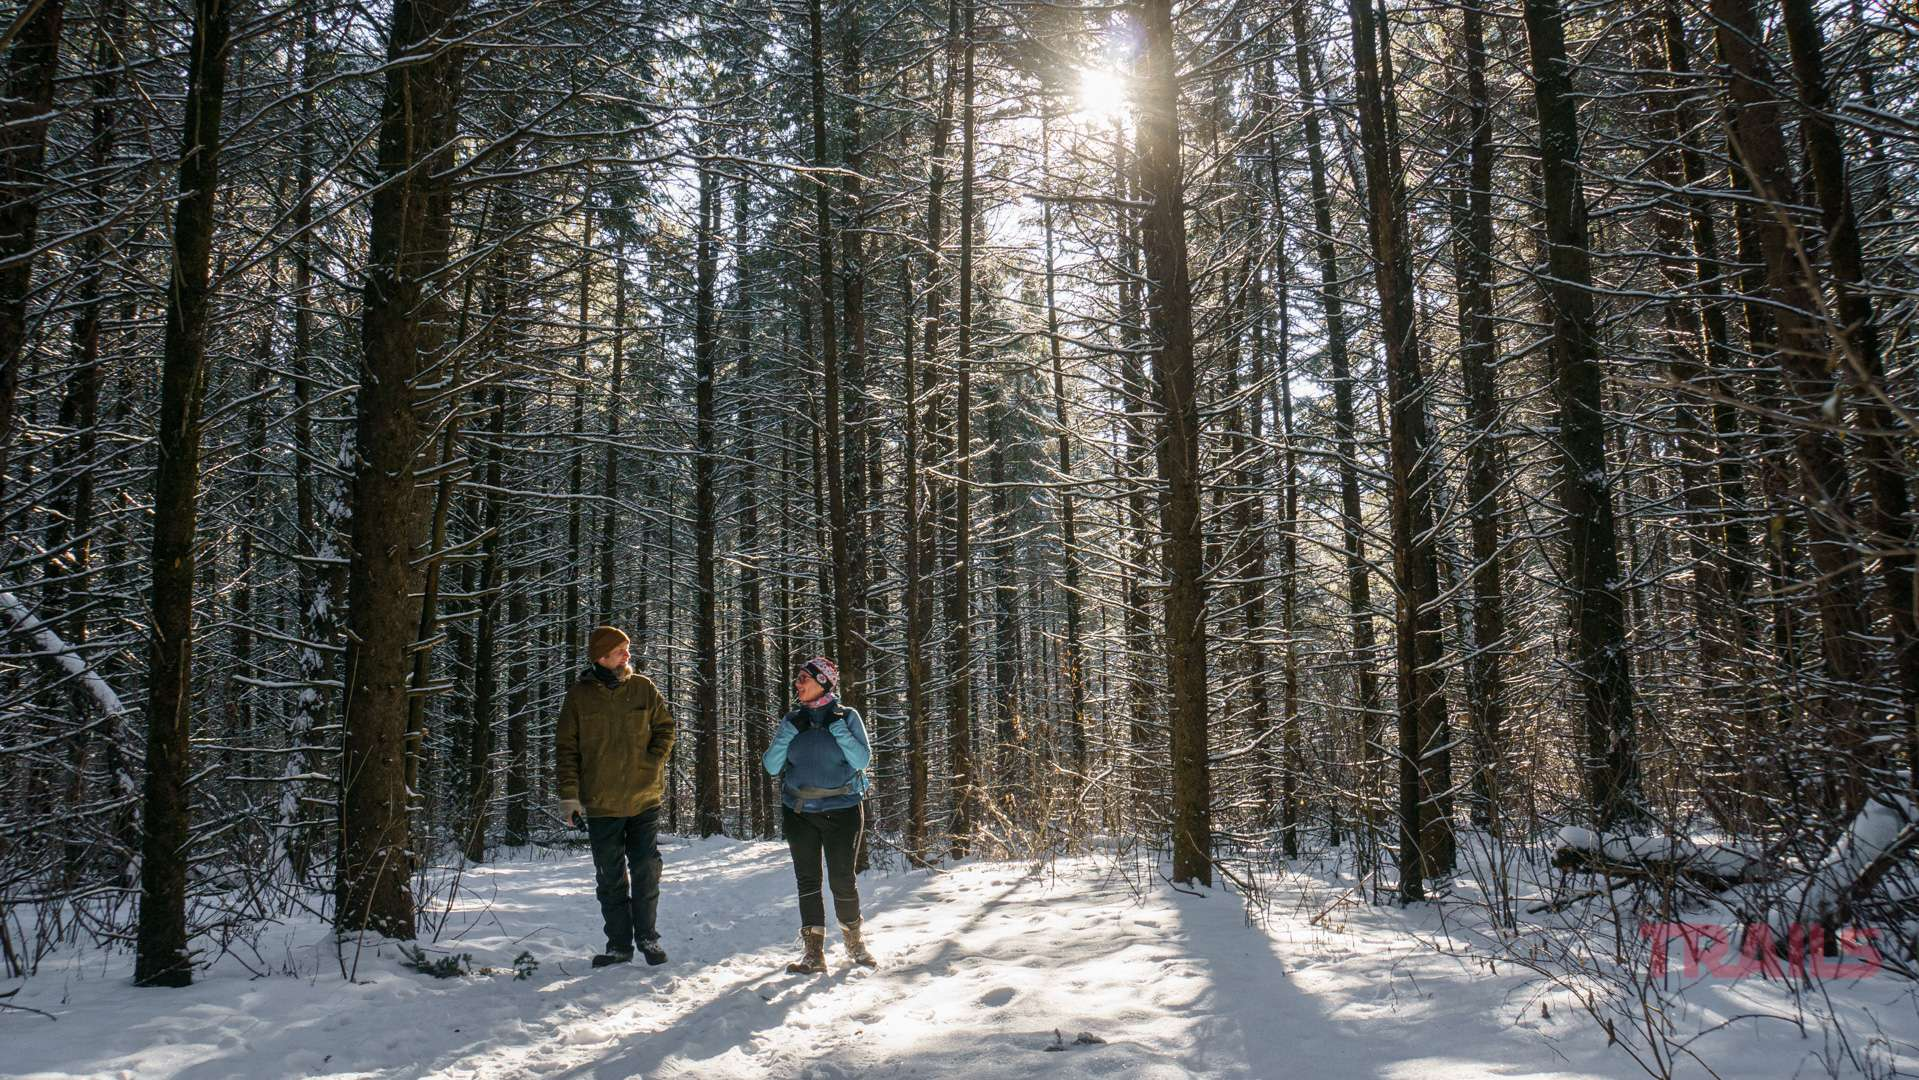 A man and a woman walk through a forest in the winter